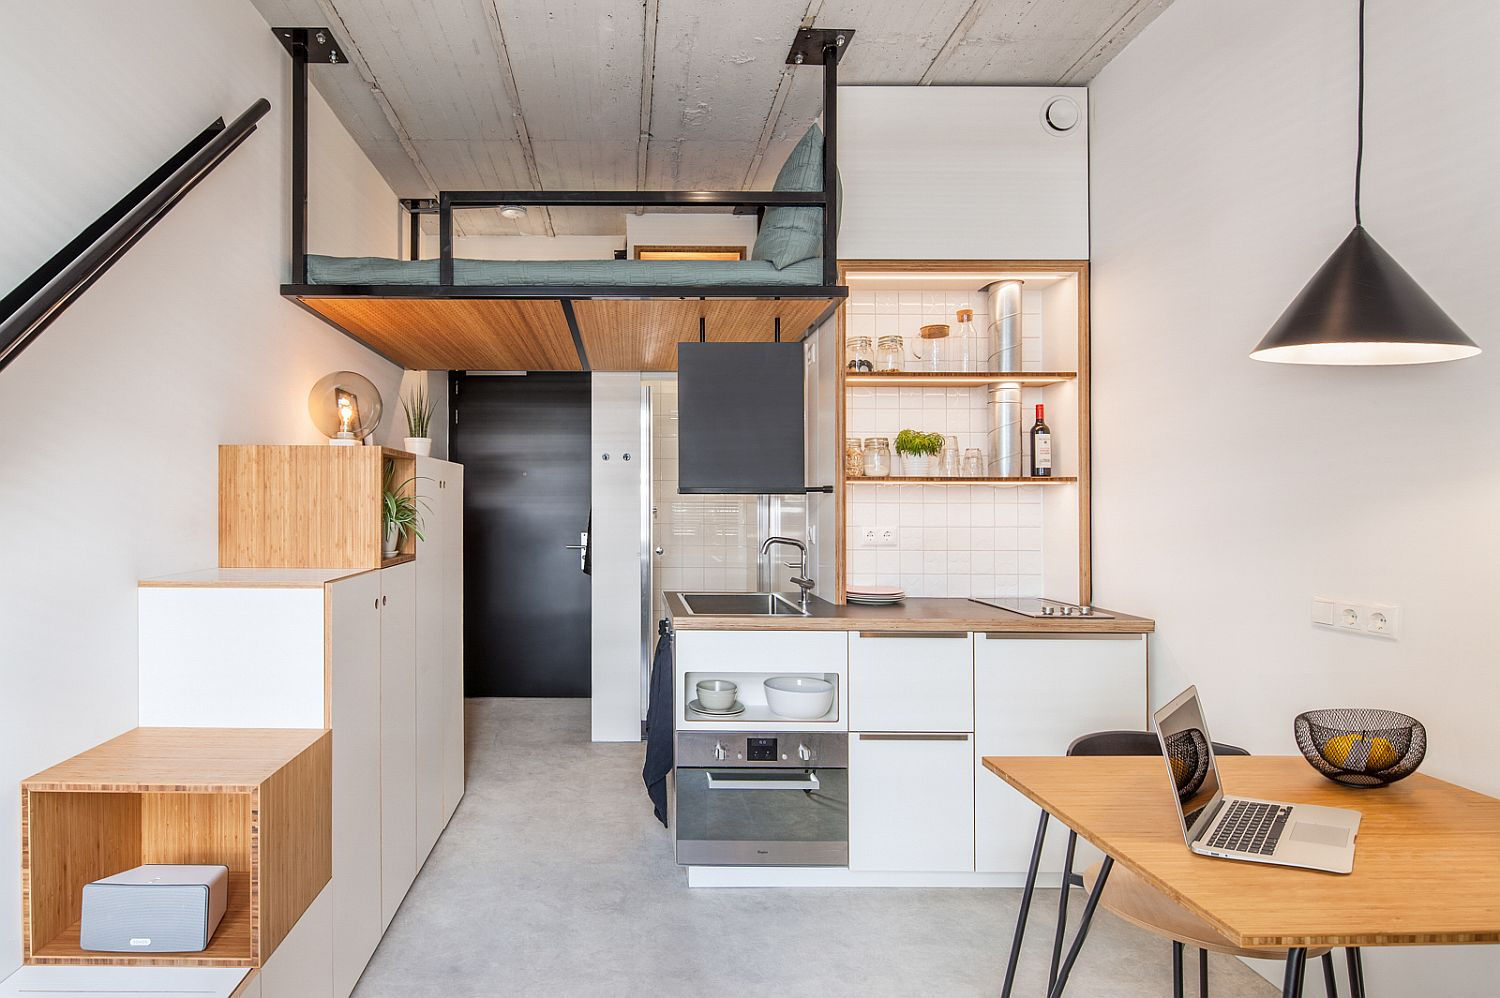 Loft Bed For Studio Apartment Tiny 18 Sqm Apartment Offers Student Housing With Space